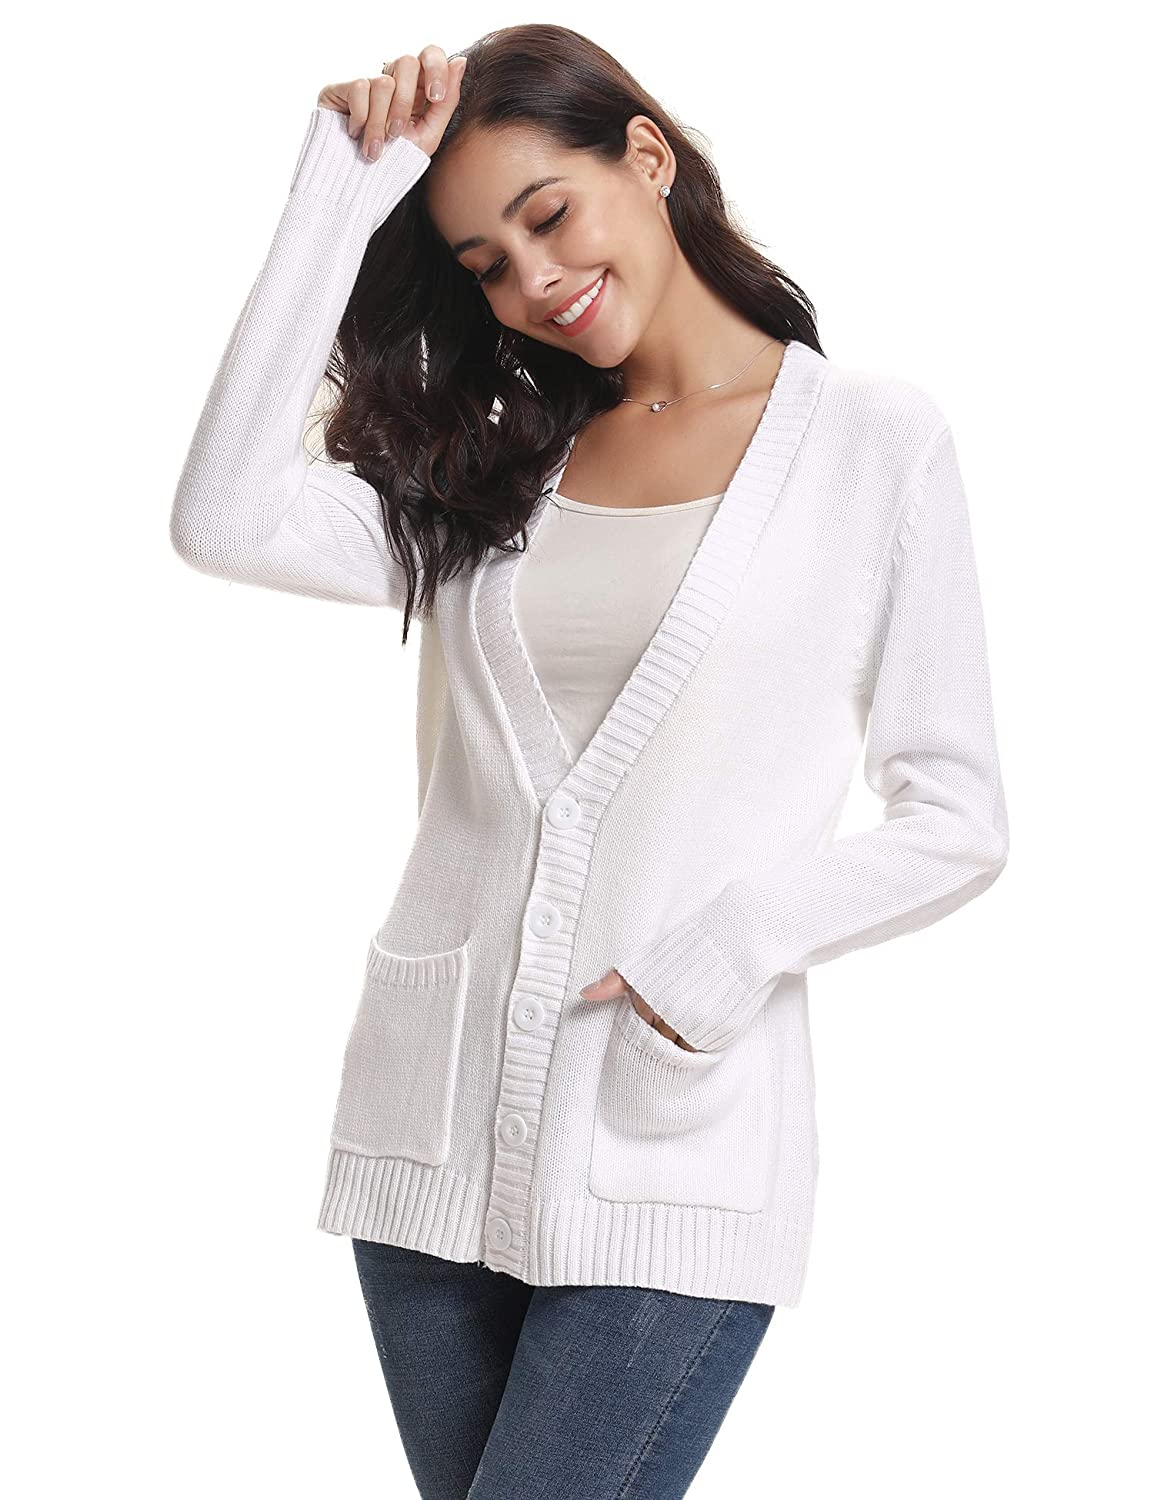 Abollria Cardigans Women Lightweight Long Sleeve Button Down Chunky Cable Knitted Sweater Jumper Cardigan Pockets